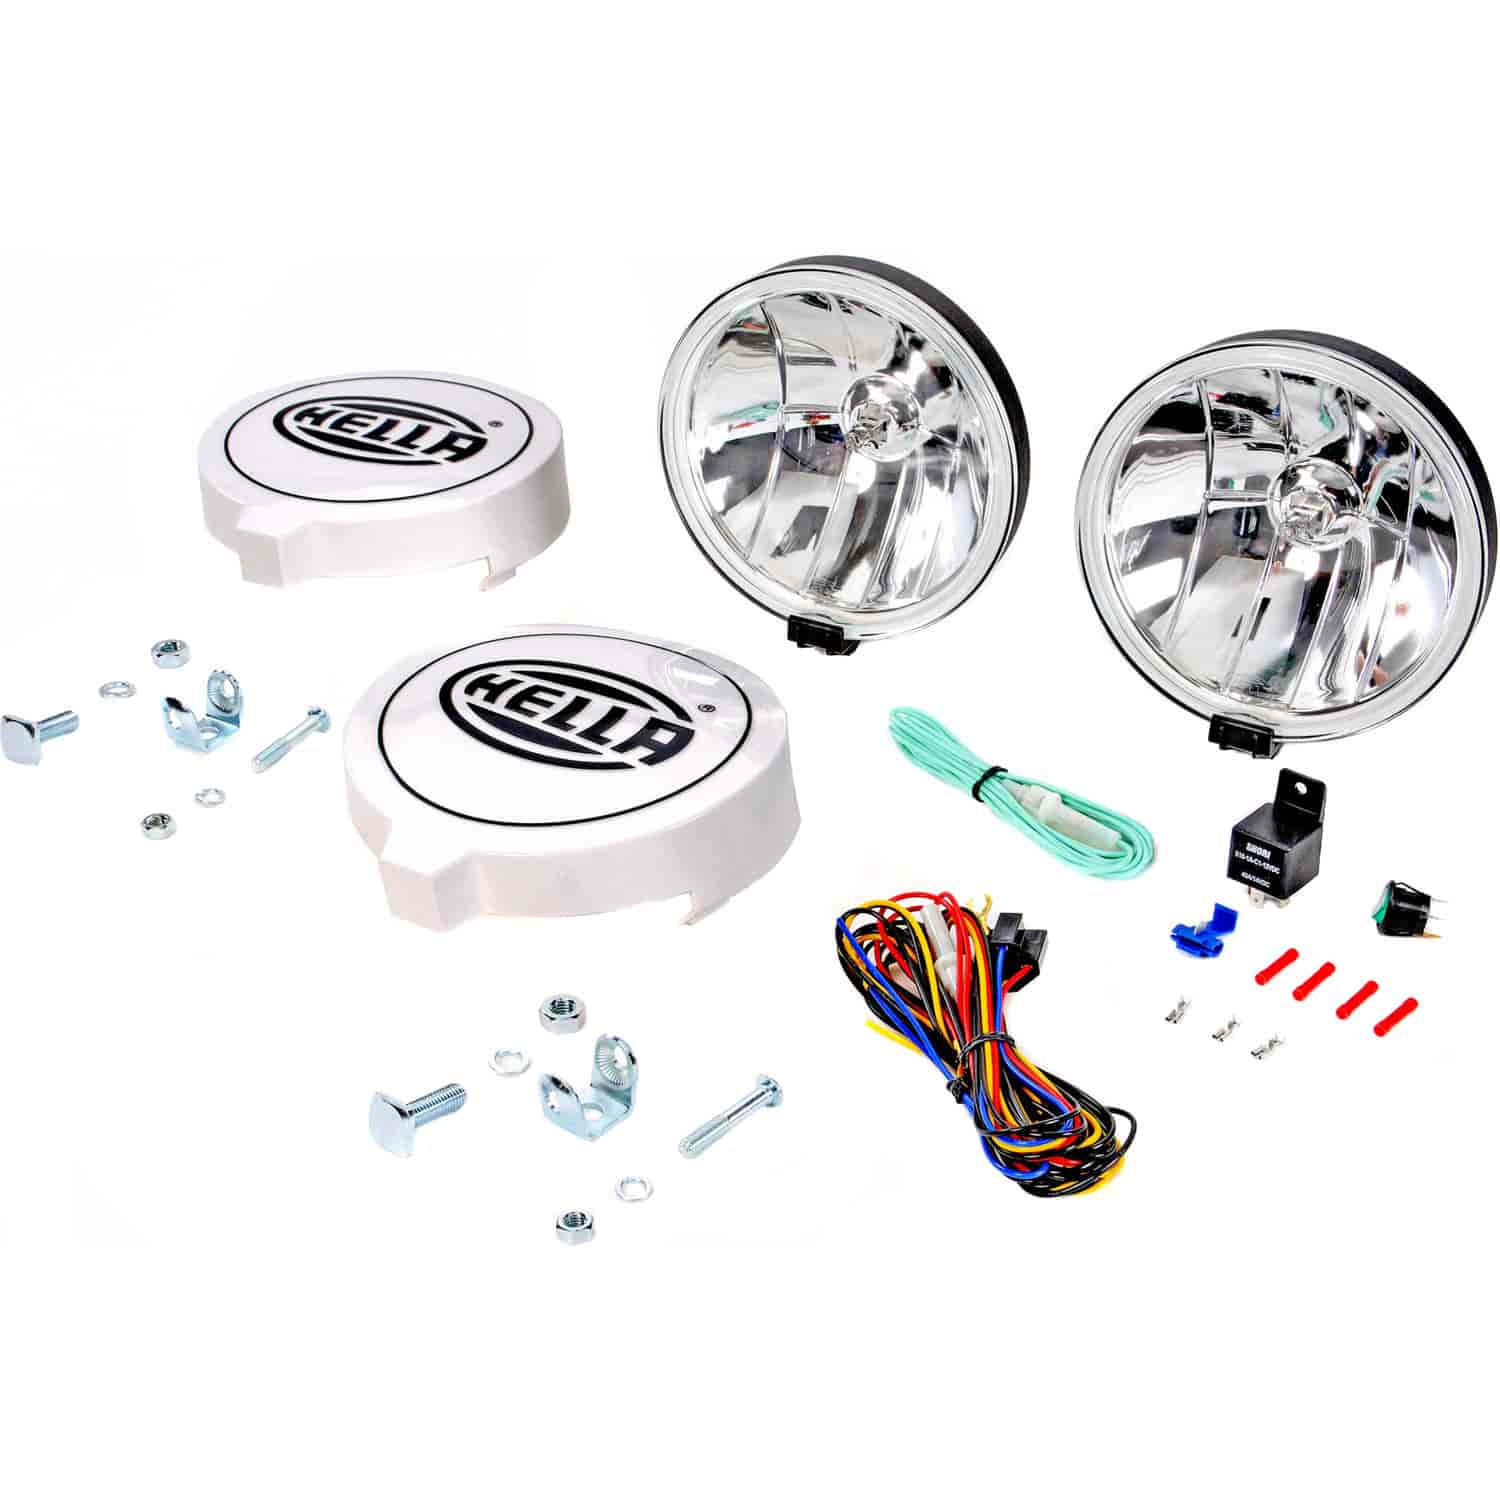 Hella 010032801 - Hella 700FF Driving Light Kits